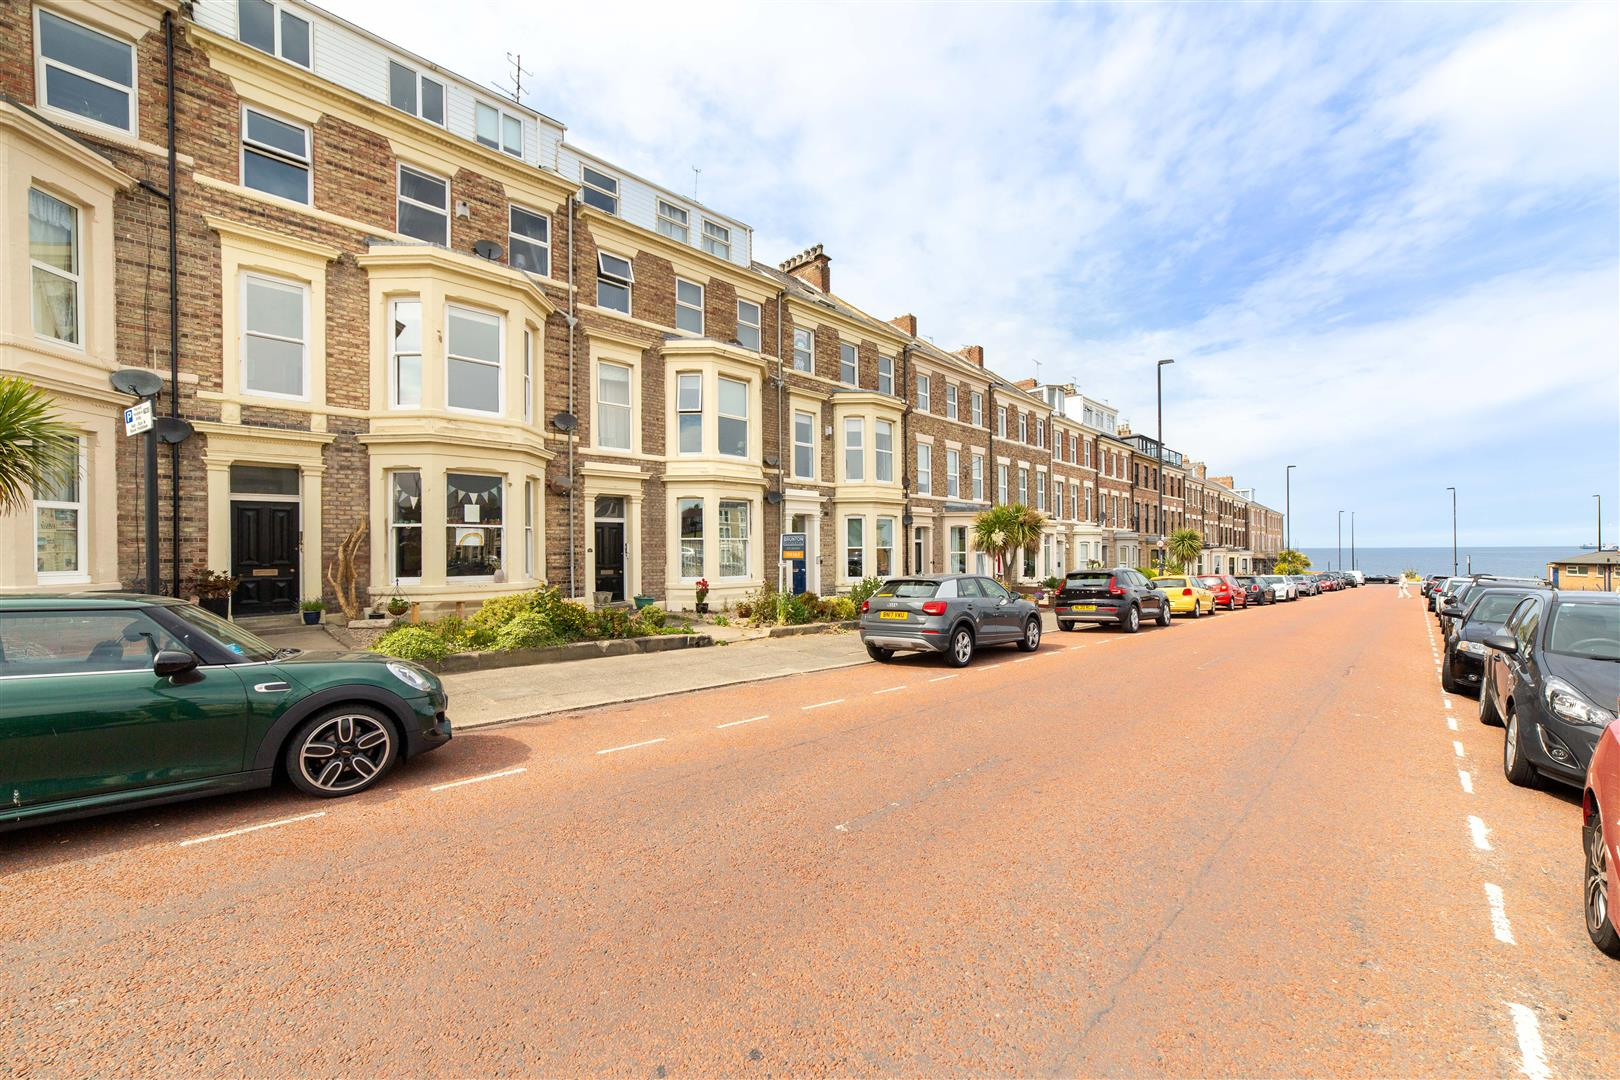 2 bed flat for sale in Tynemouth, NE30 4JX  - Property Image 1